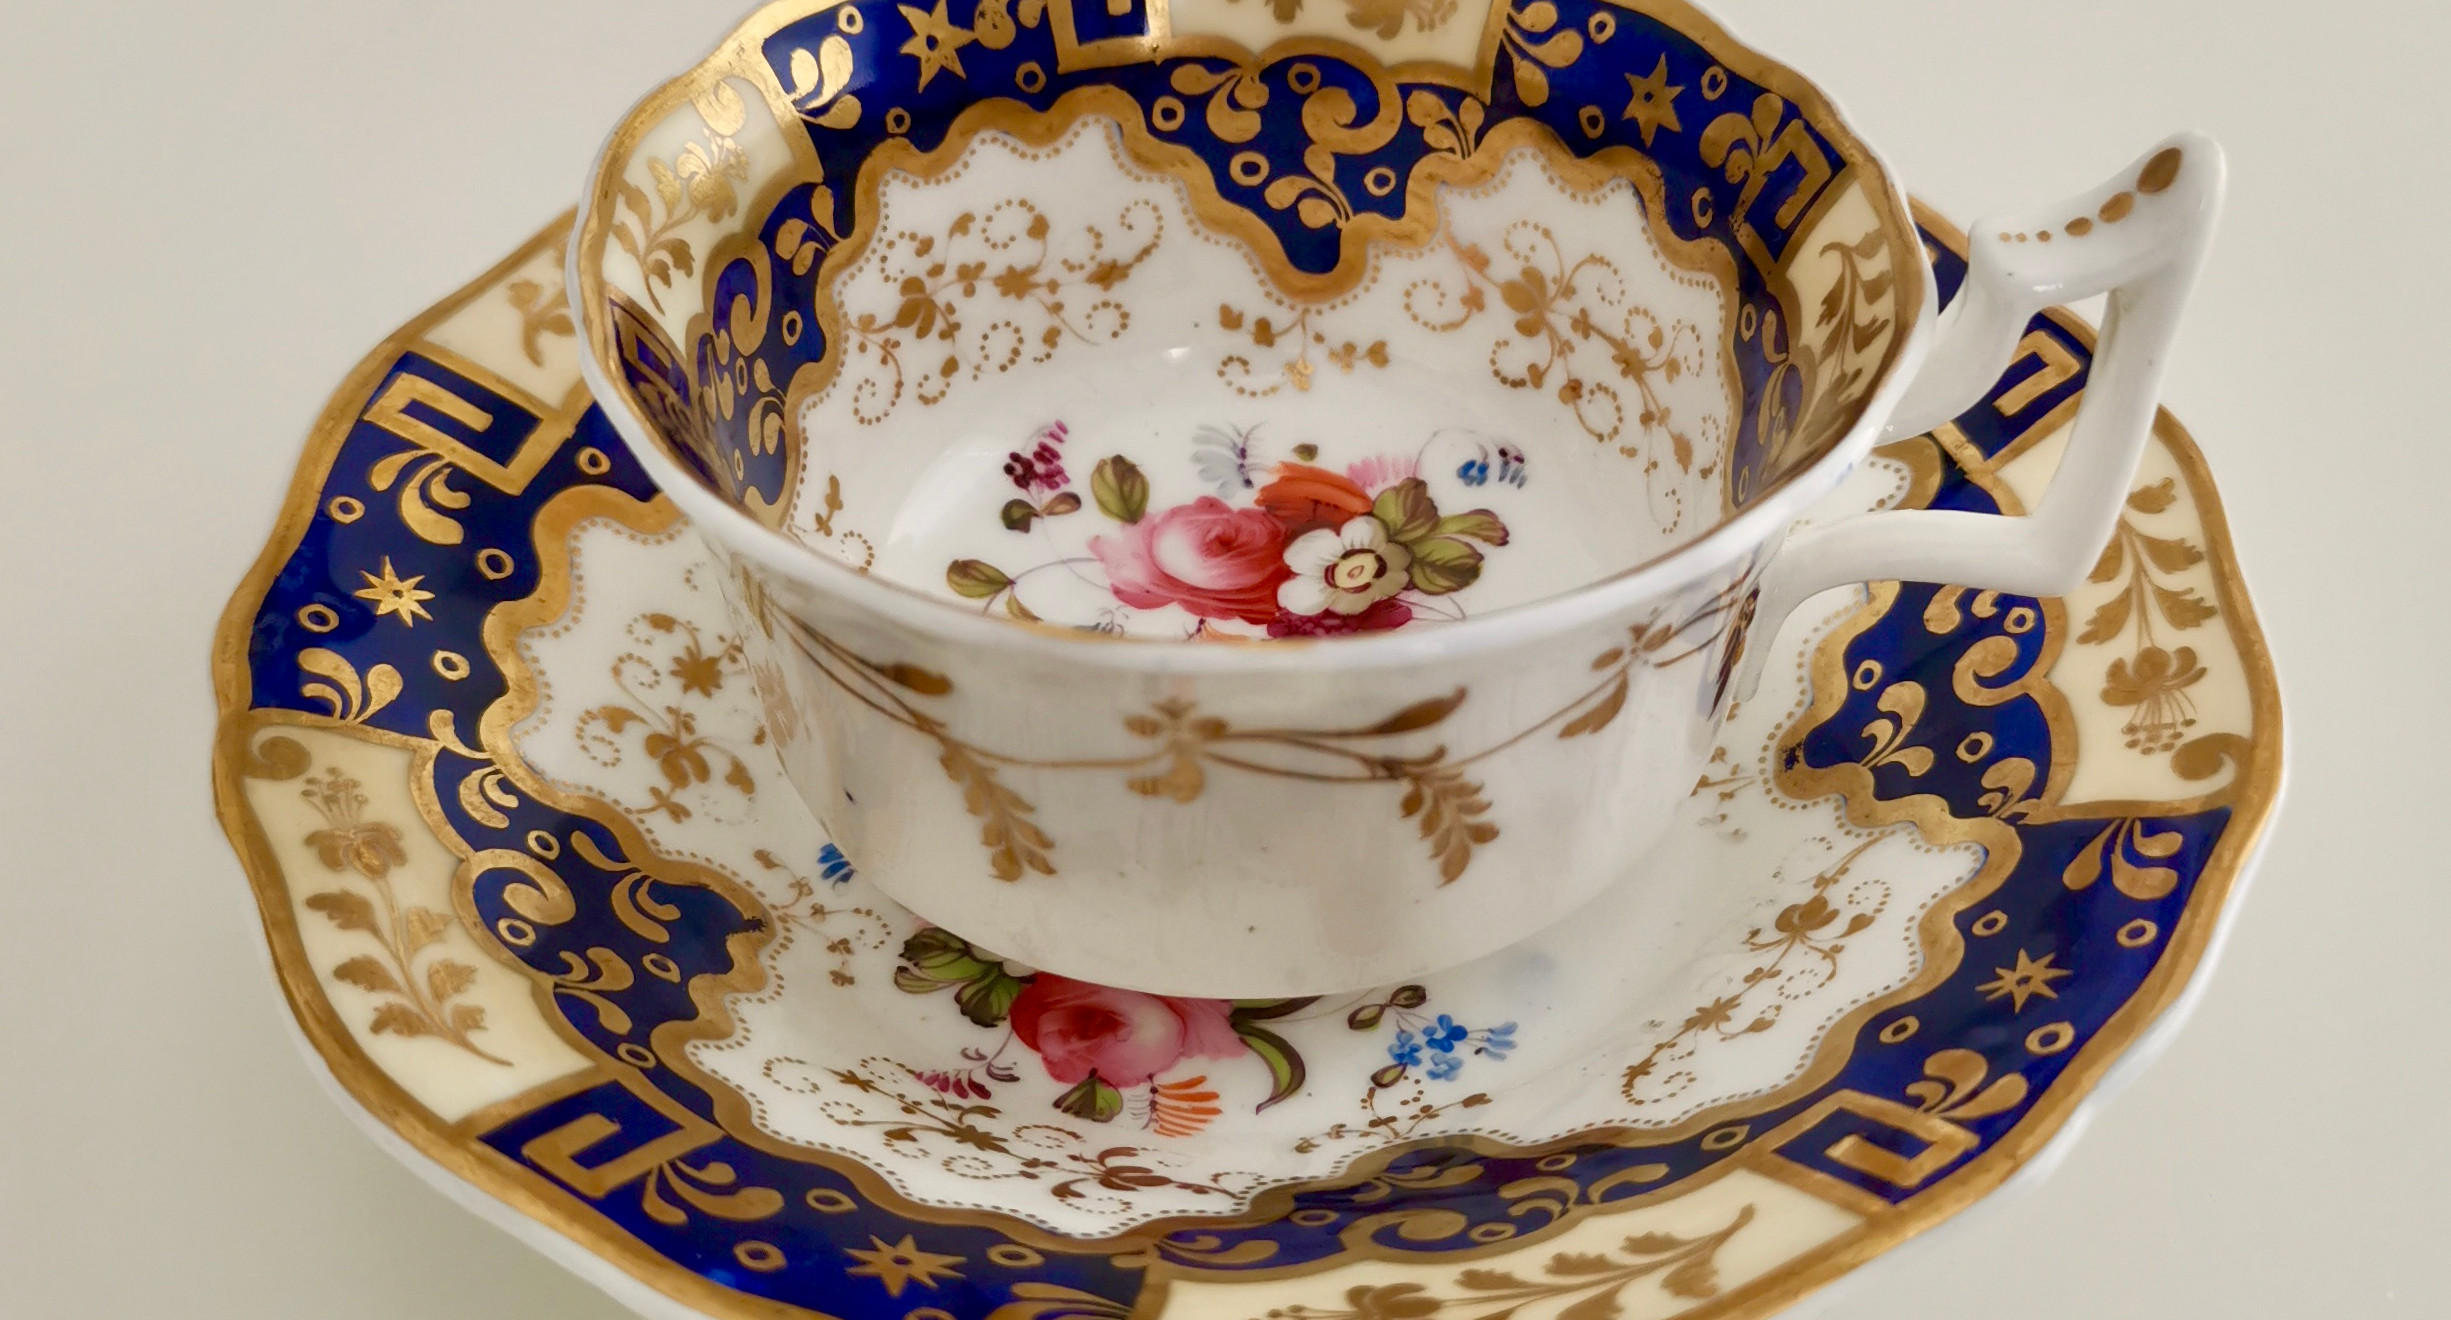 New Hall teacup with Chinese keys and flowers